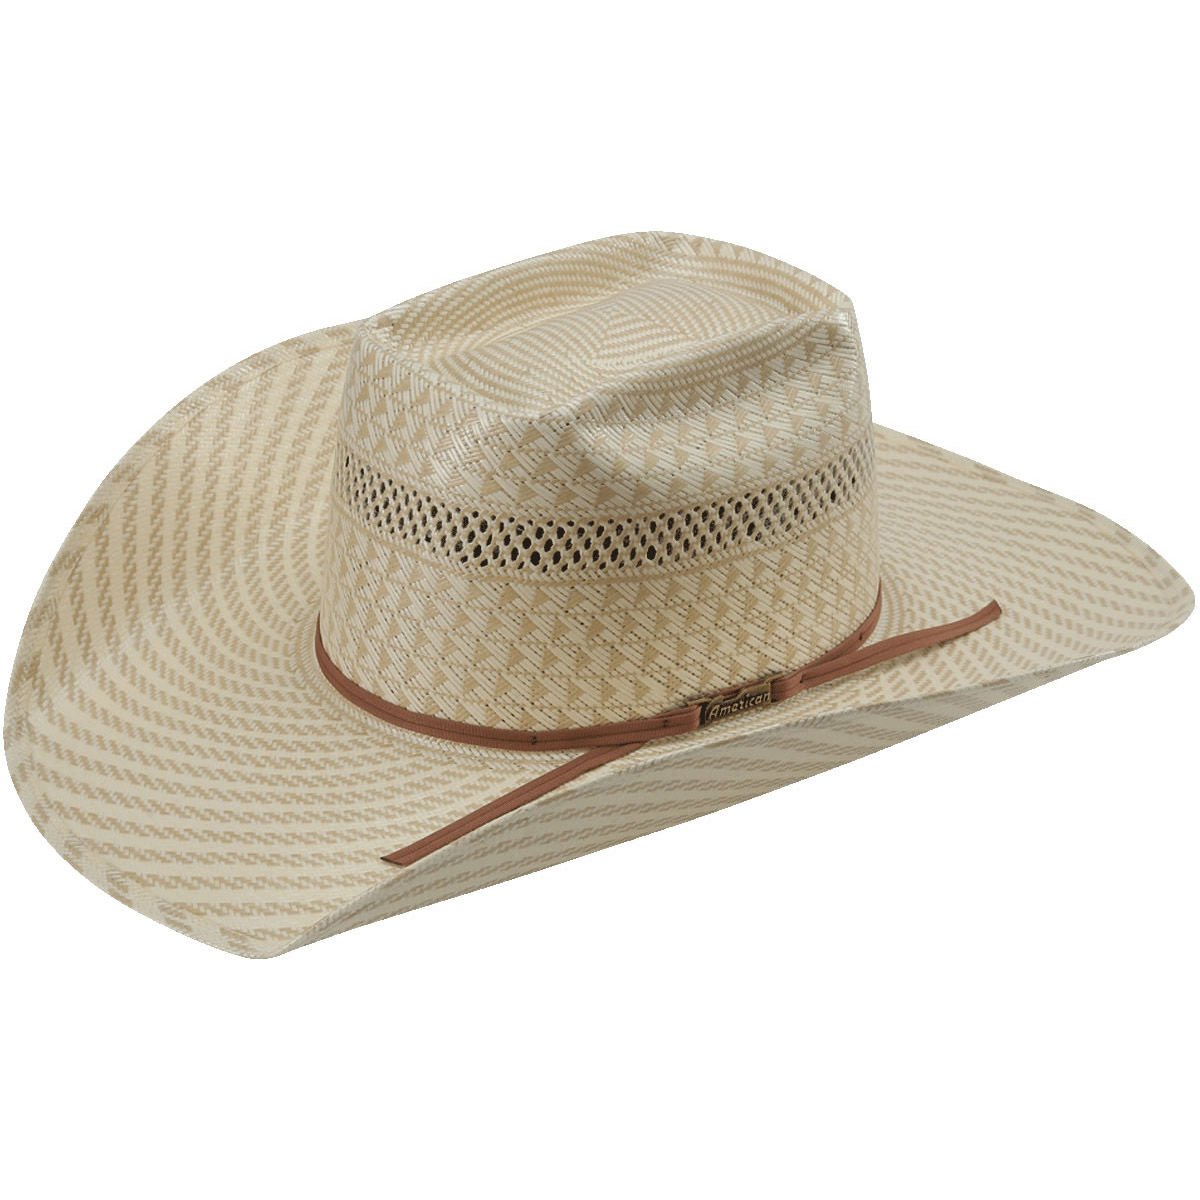 American Hat Co 15☆ Swirl Vented Straw Hat - Tan White. Tap to expand dee4f07da141